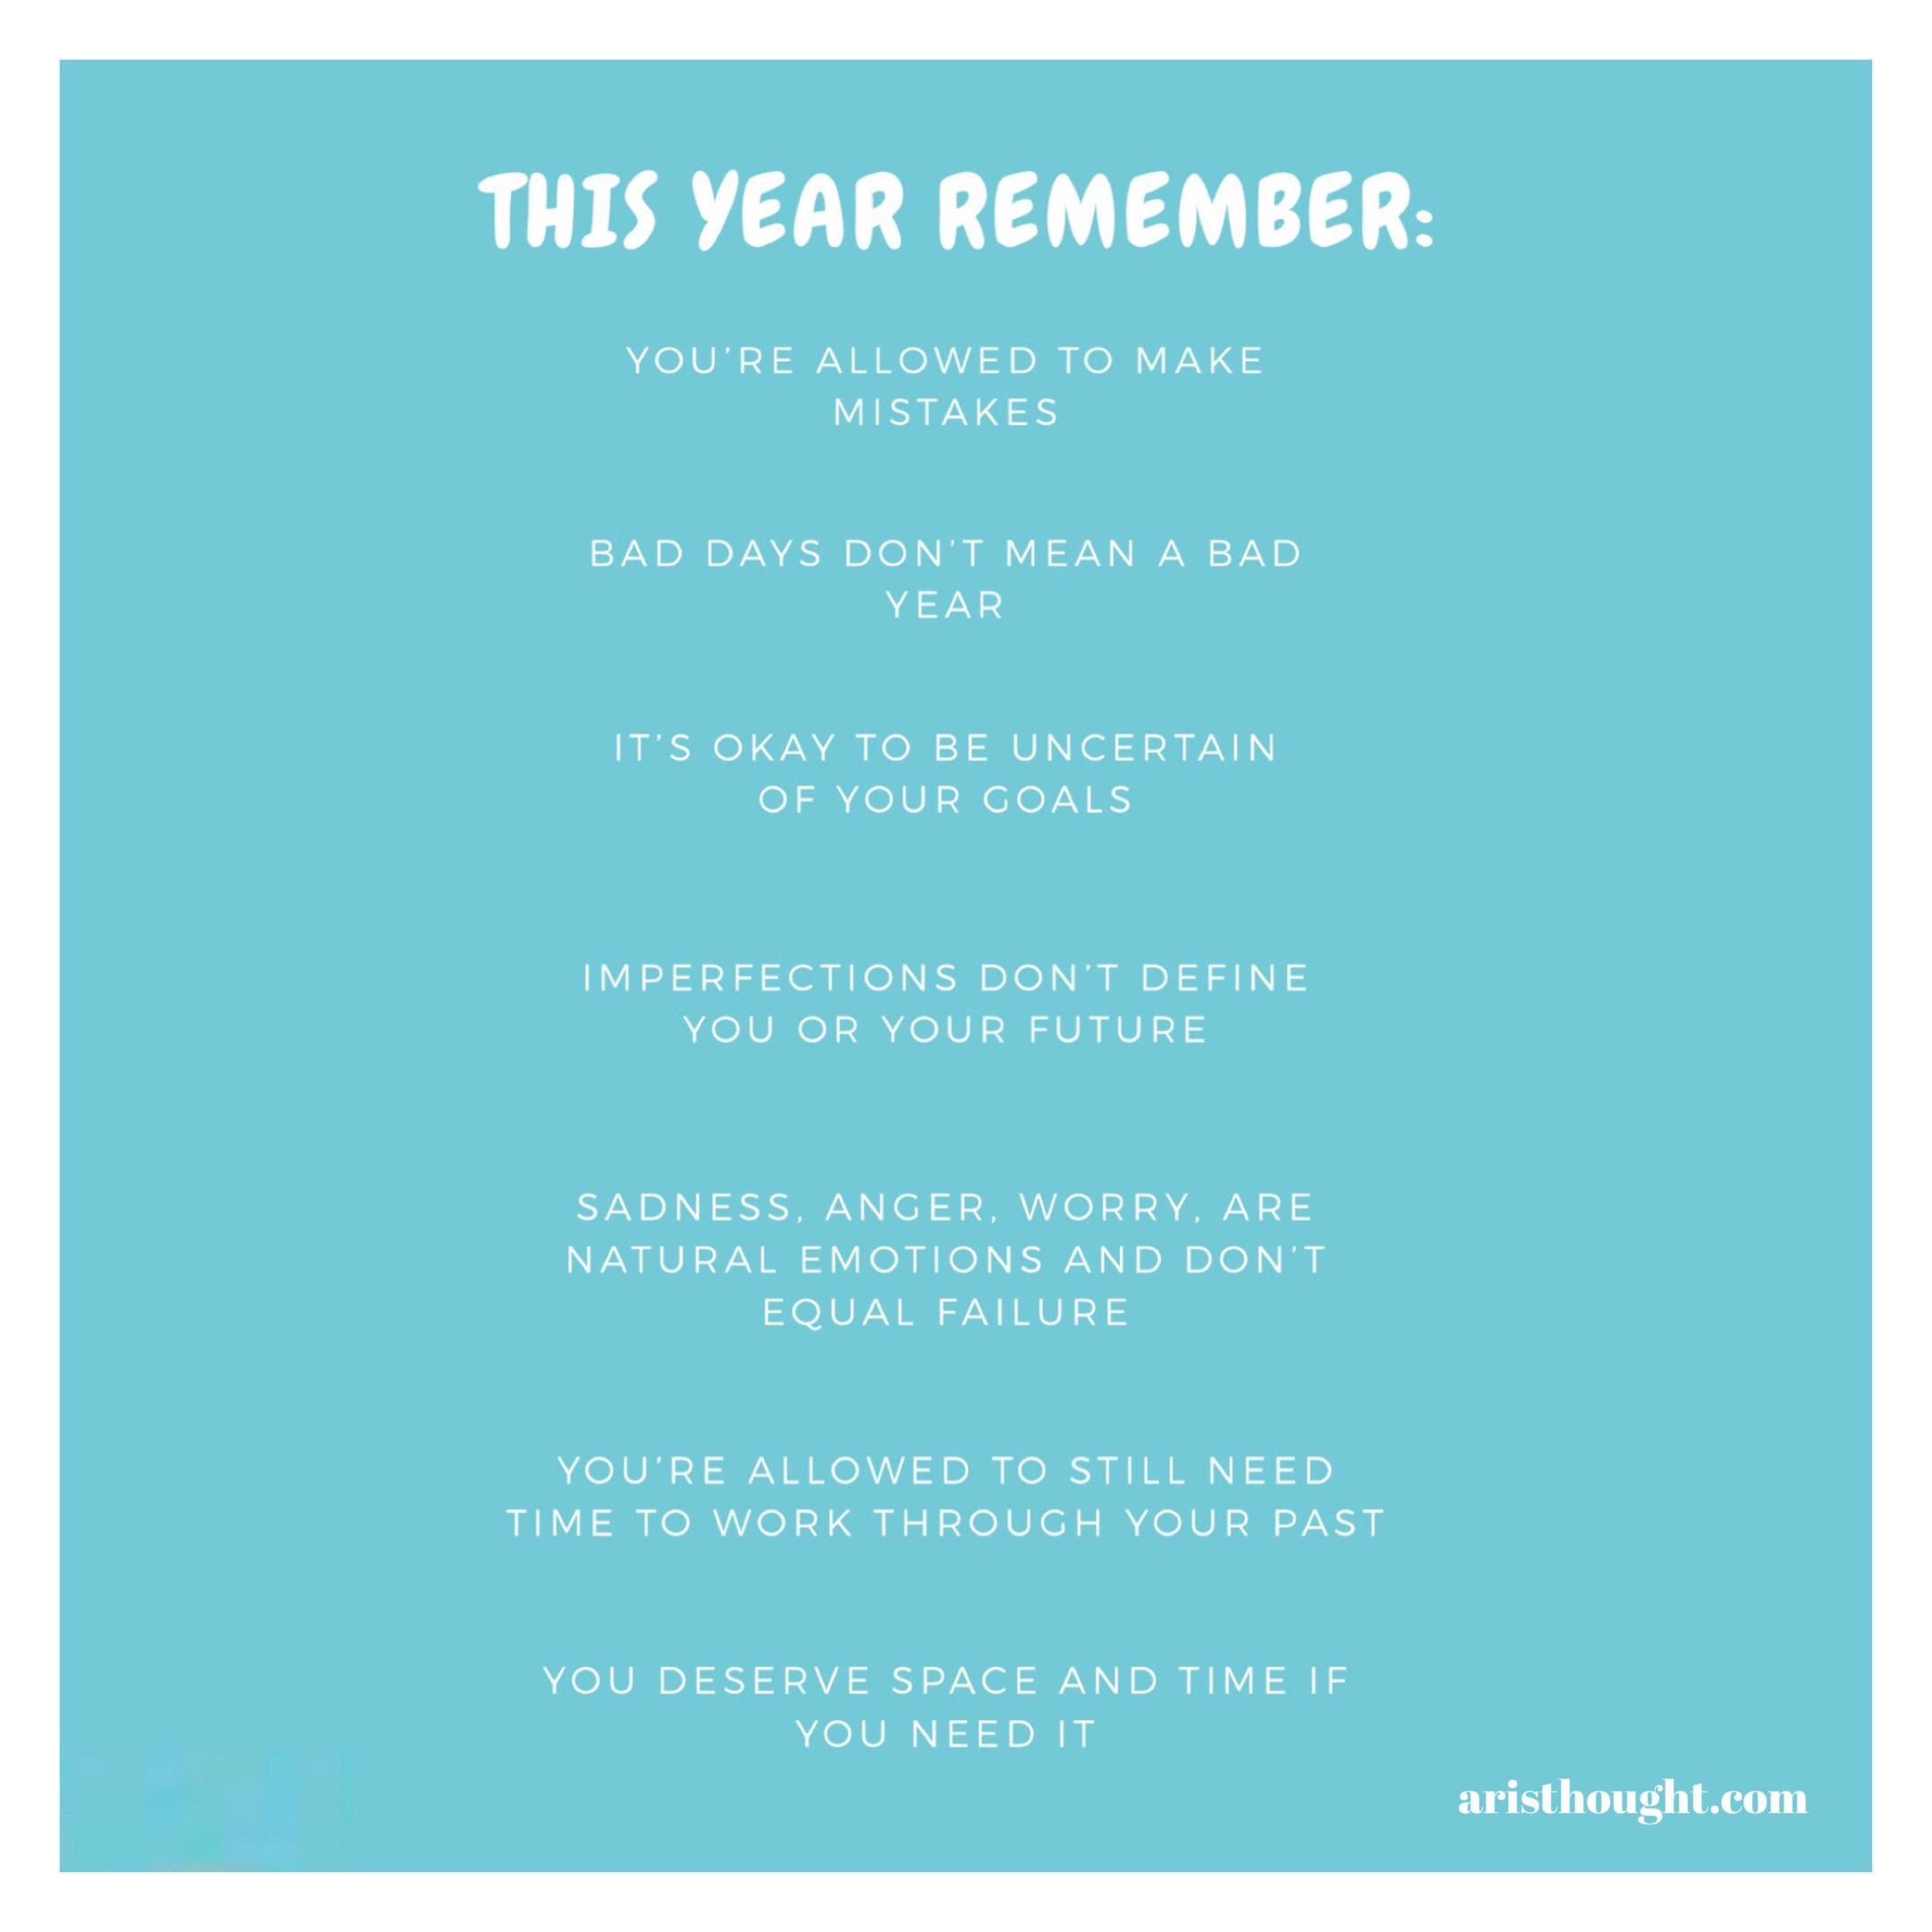 [Image] This year remember: